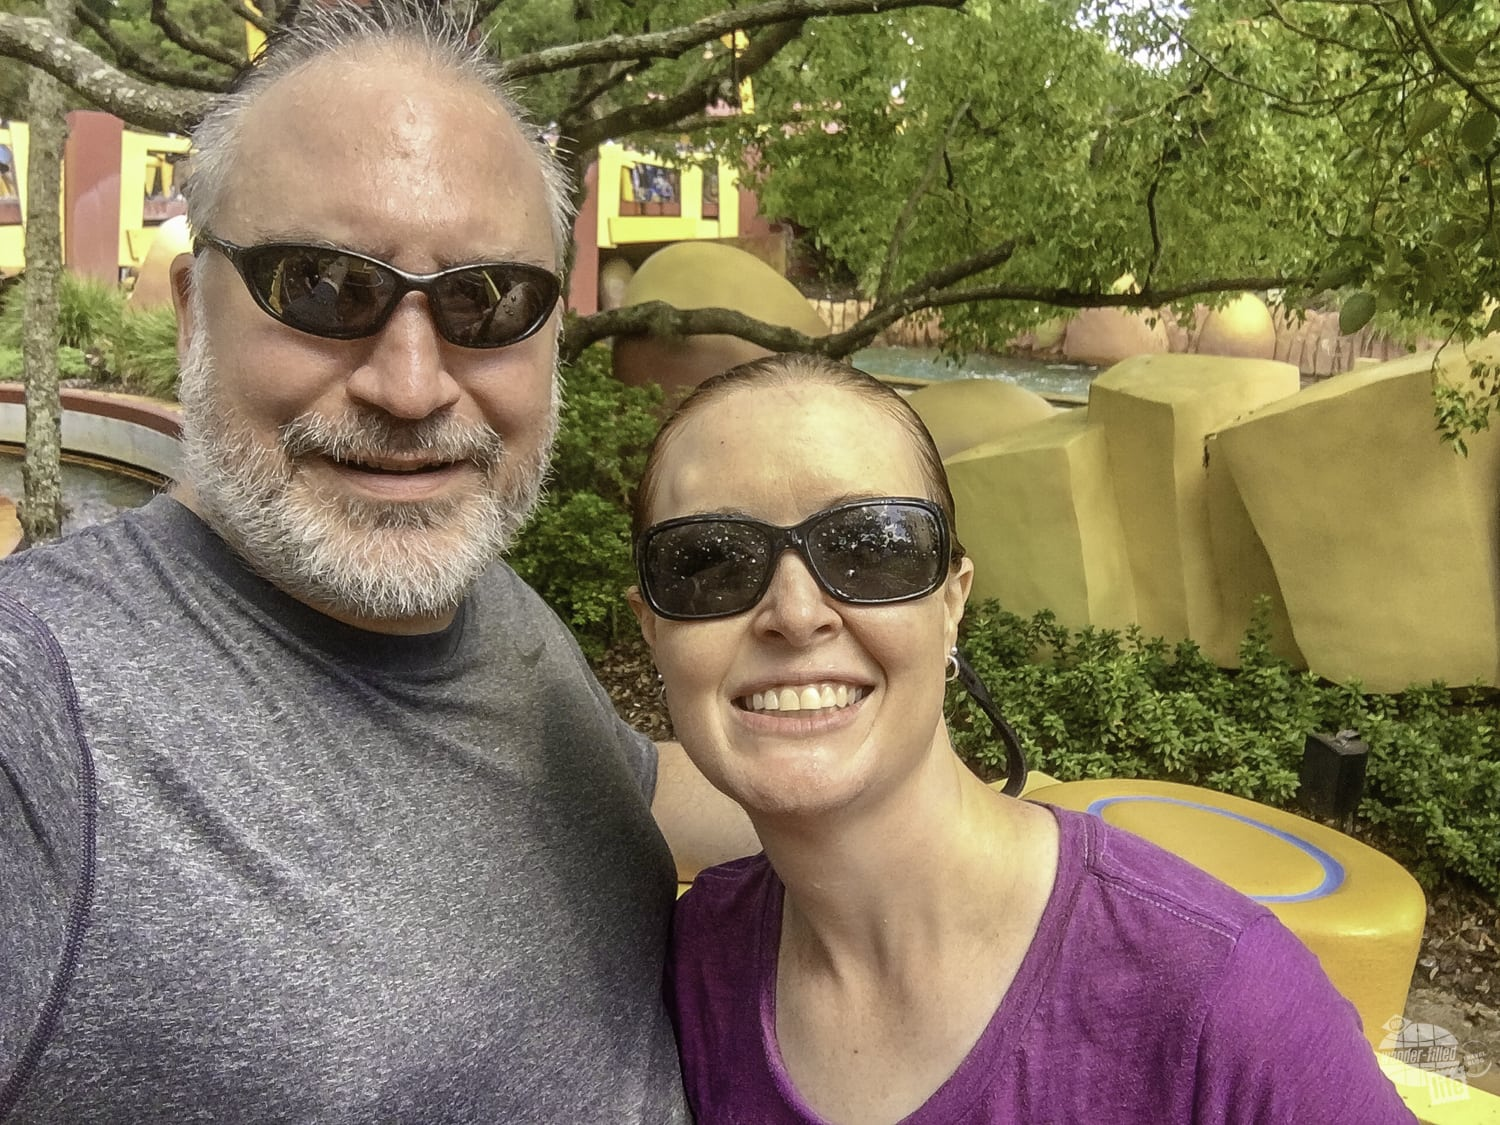 Ripsaw Falls completely soaked us. Quite refreshing on a hot day!